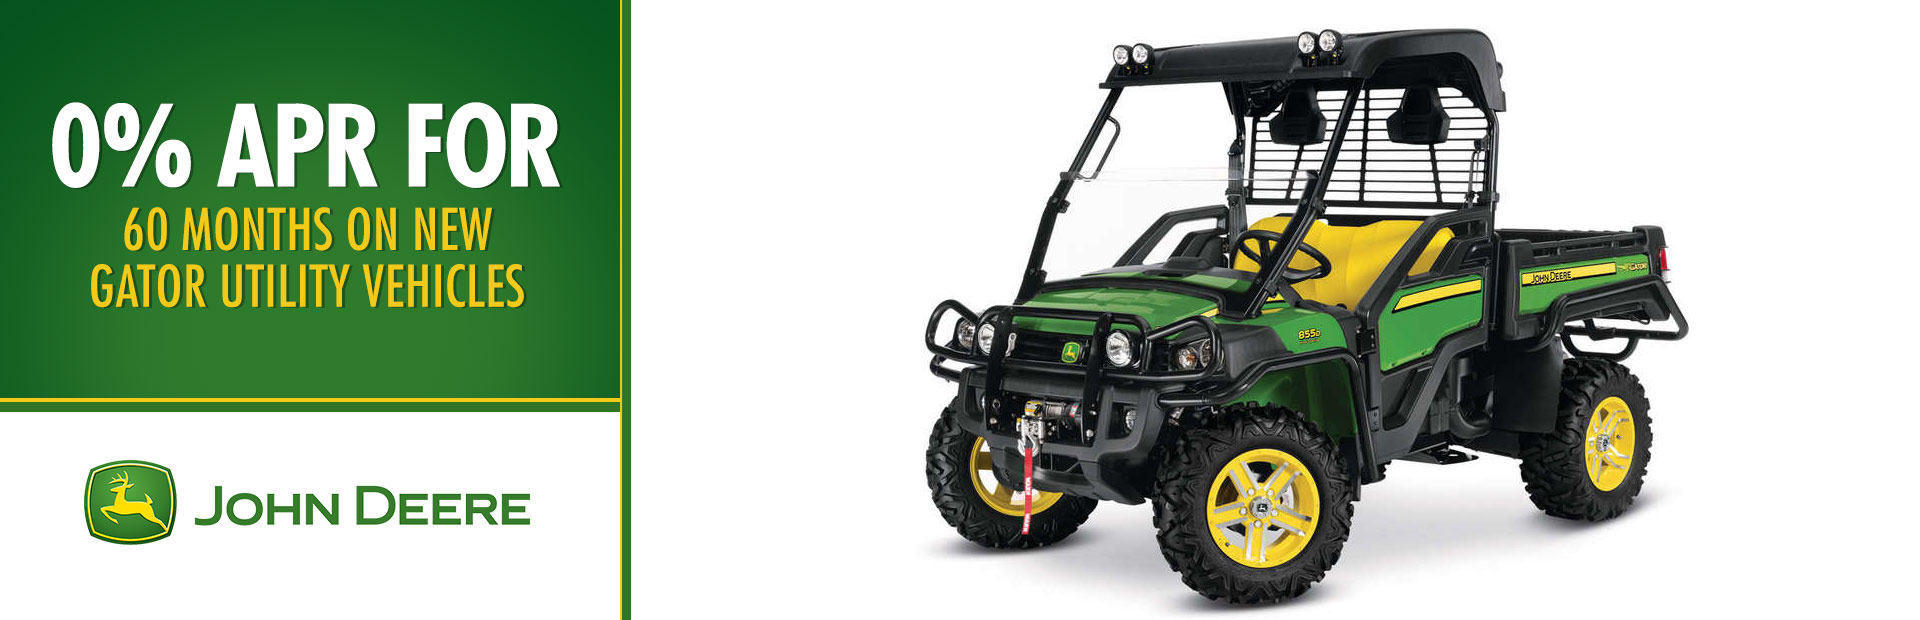 0% APR for 60 Months on New Gator Utility Vehicles